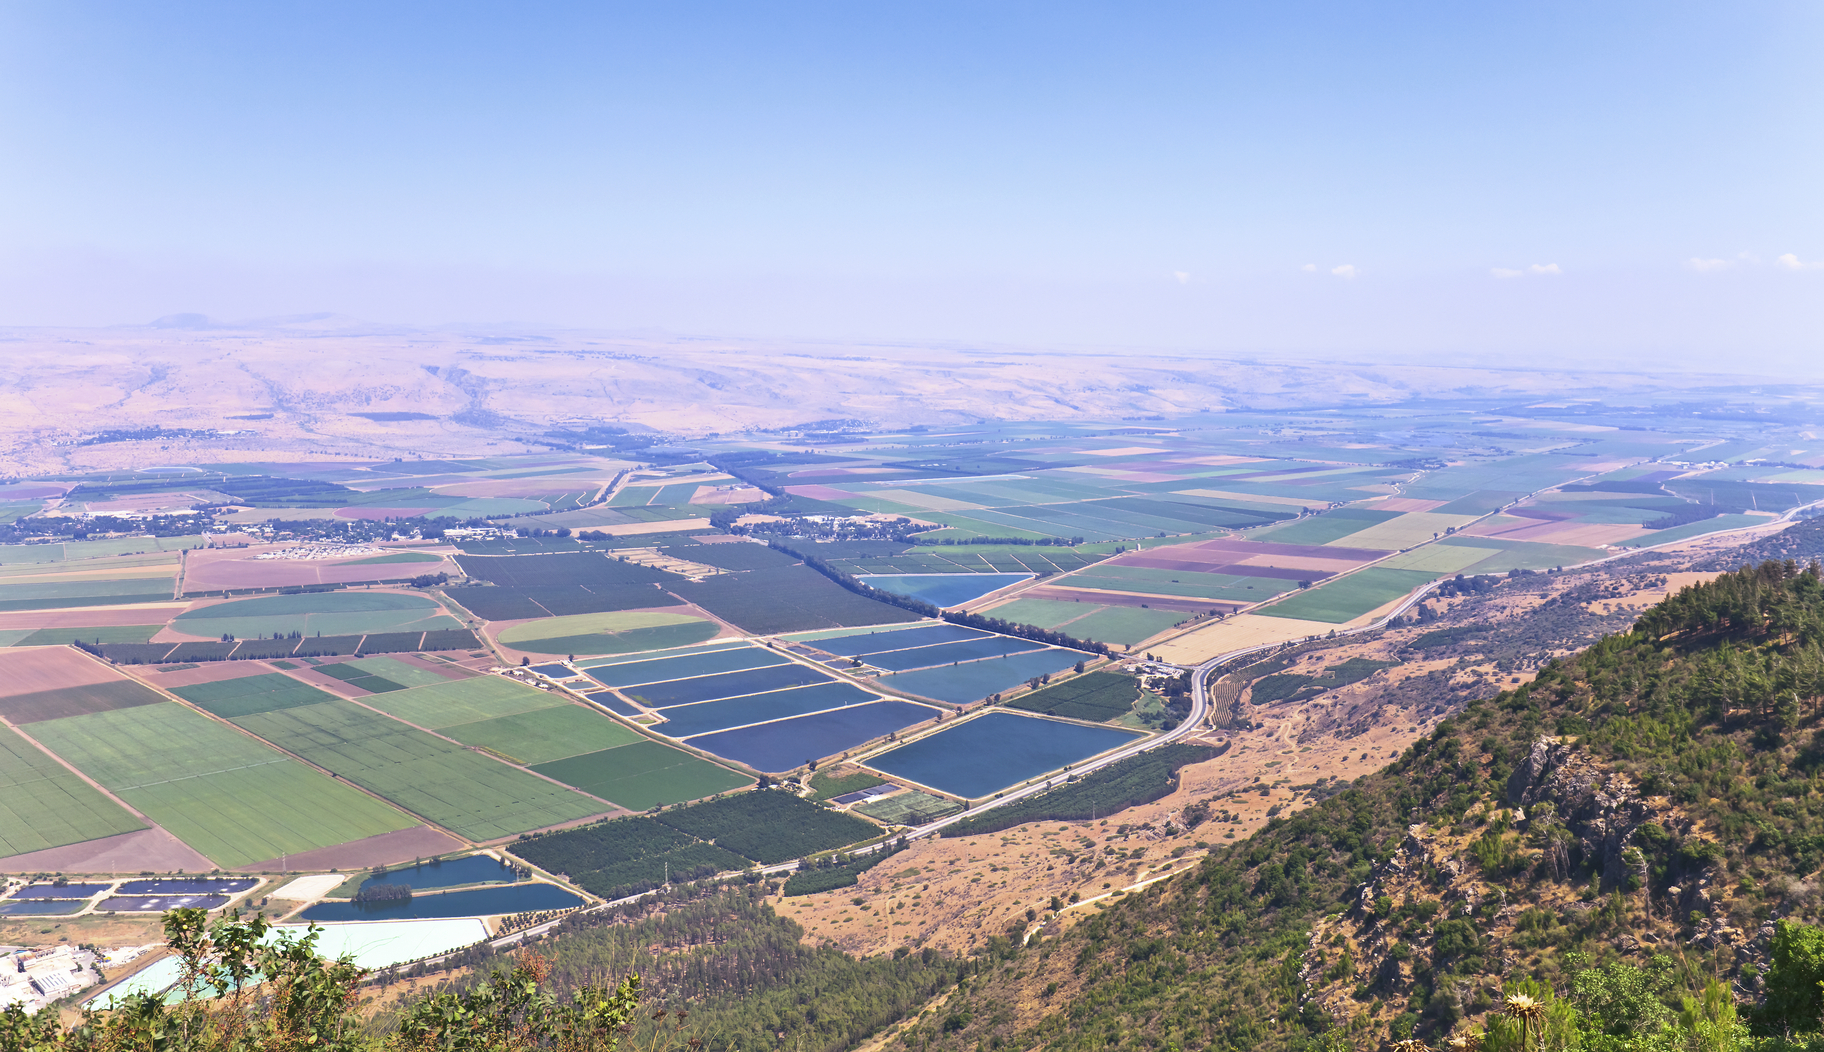 Technologies such as drip irrigation have transformed the Negev Desert into fertile farmlands  (Source  iStock )